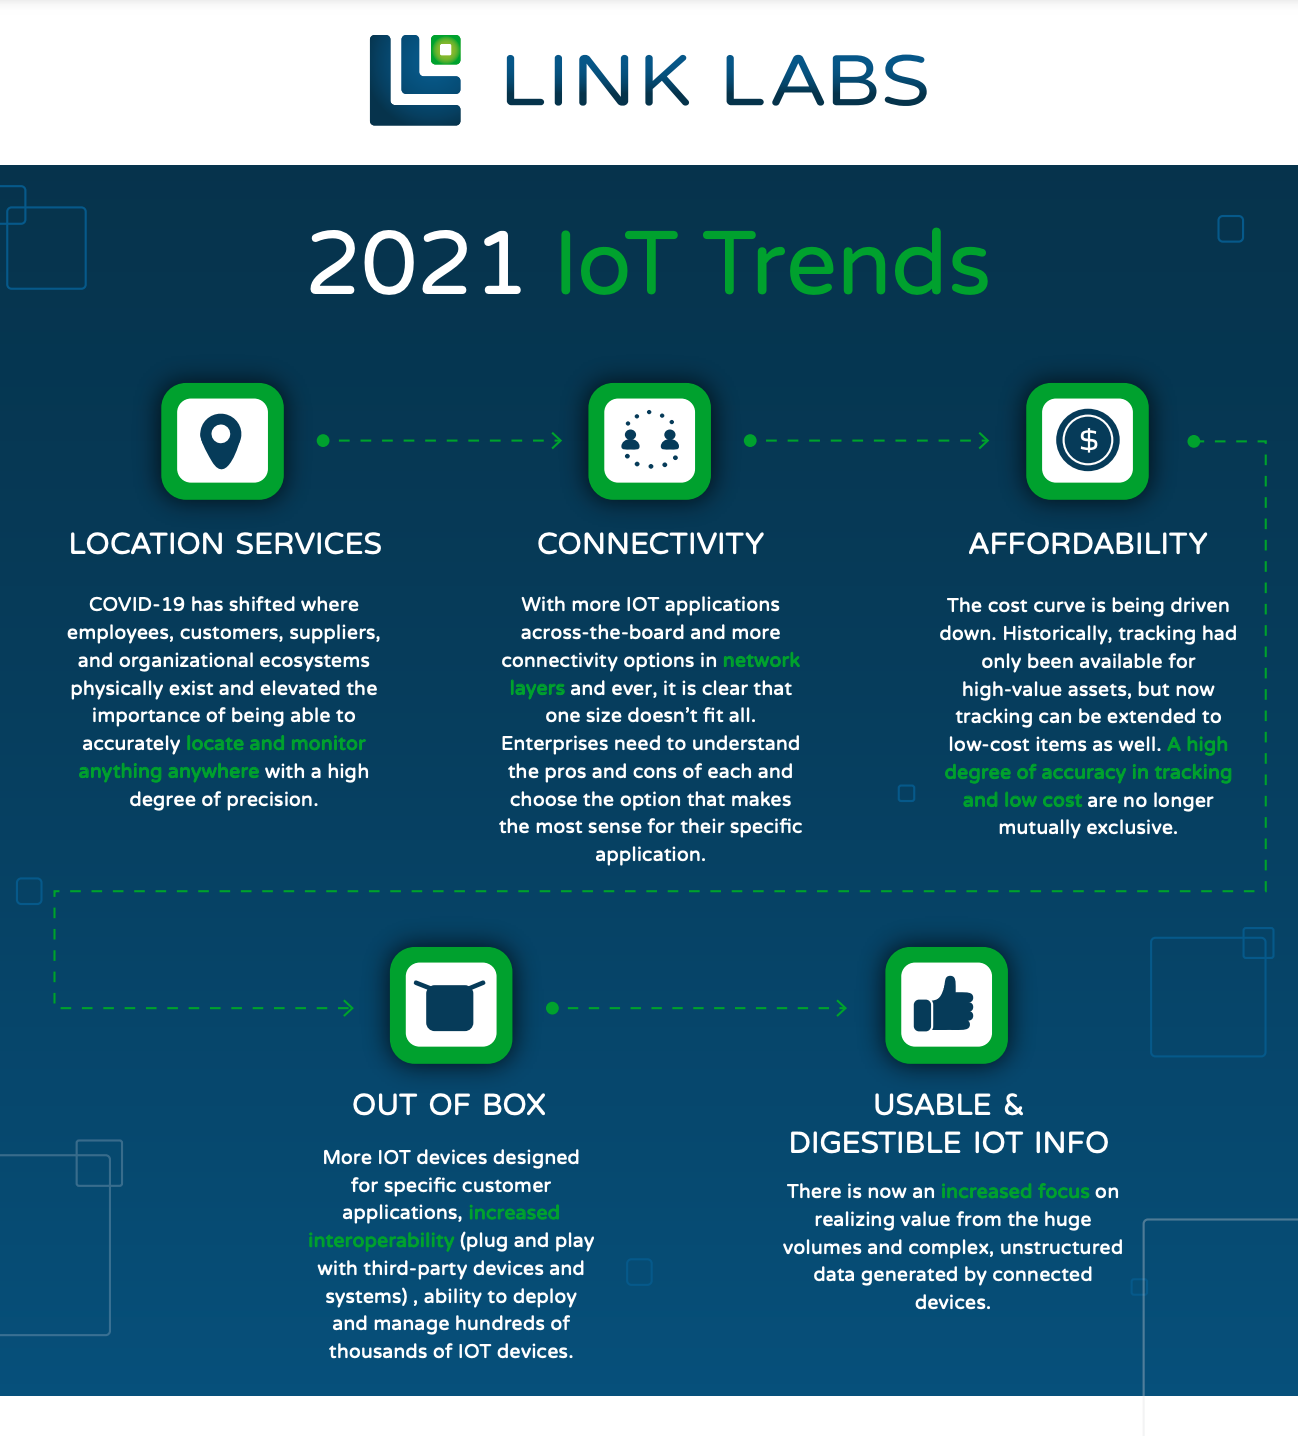 Discover the Top IoT Trends of 2021